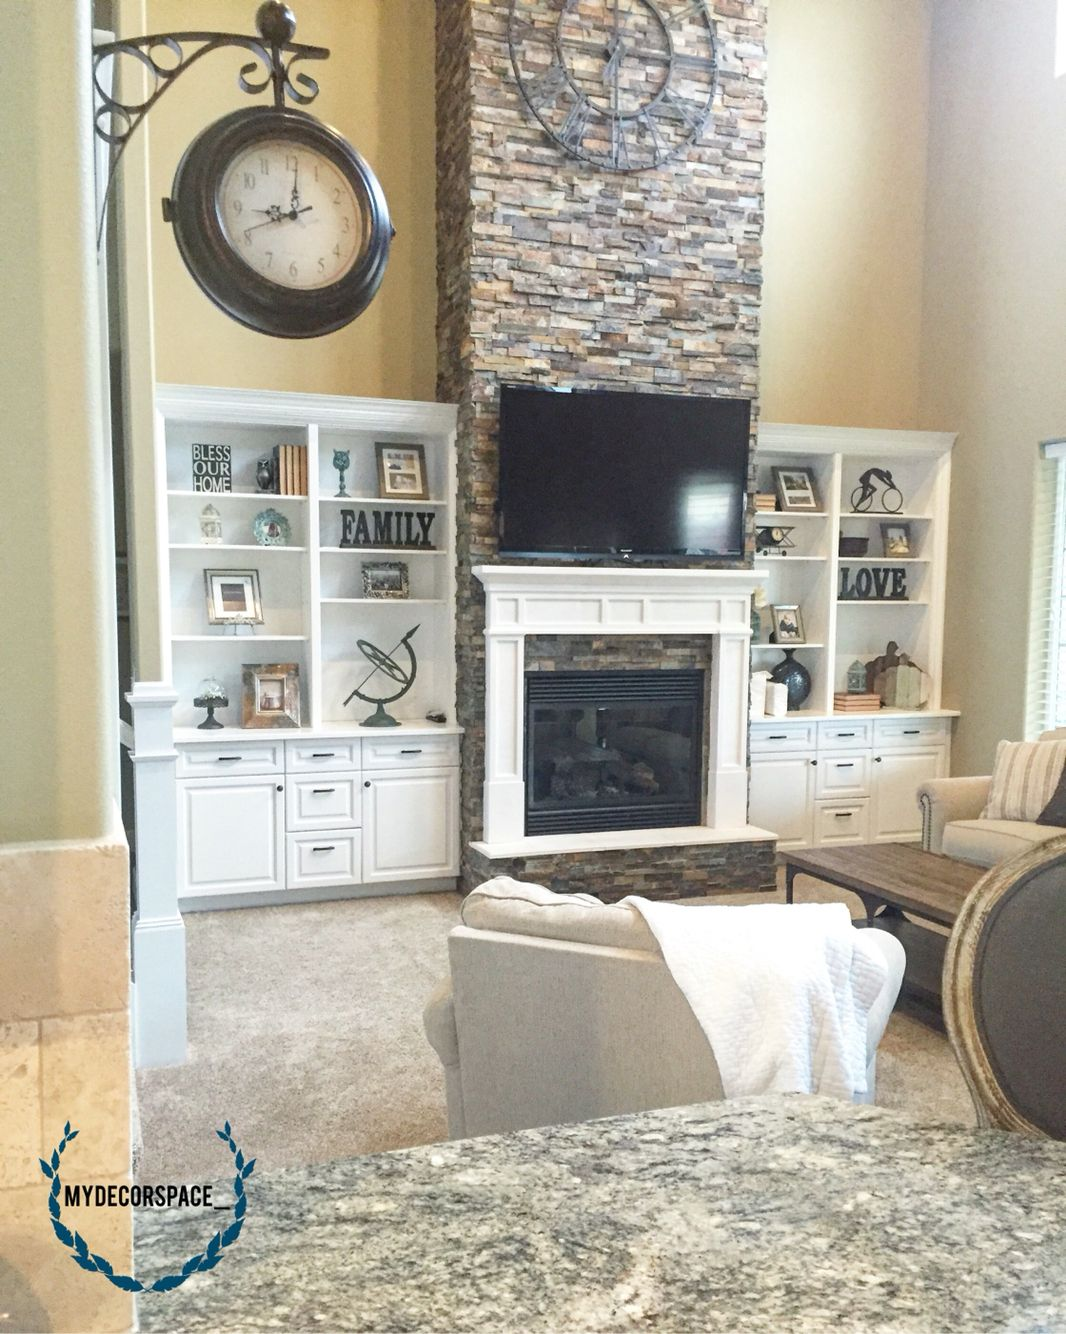 Great room living room family room fireplace rock mantle ...